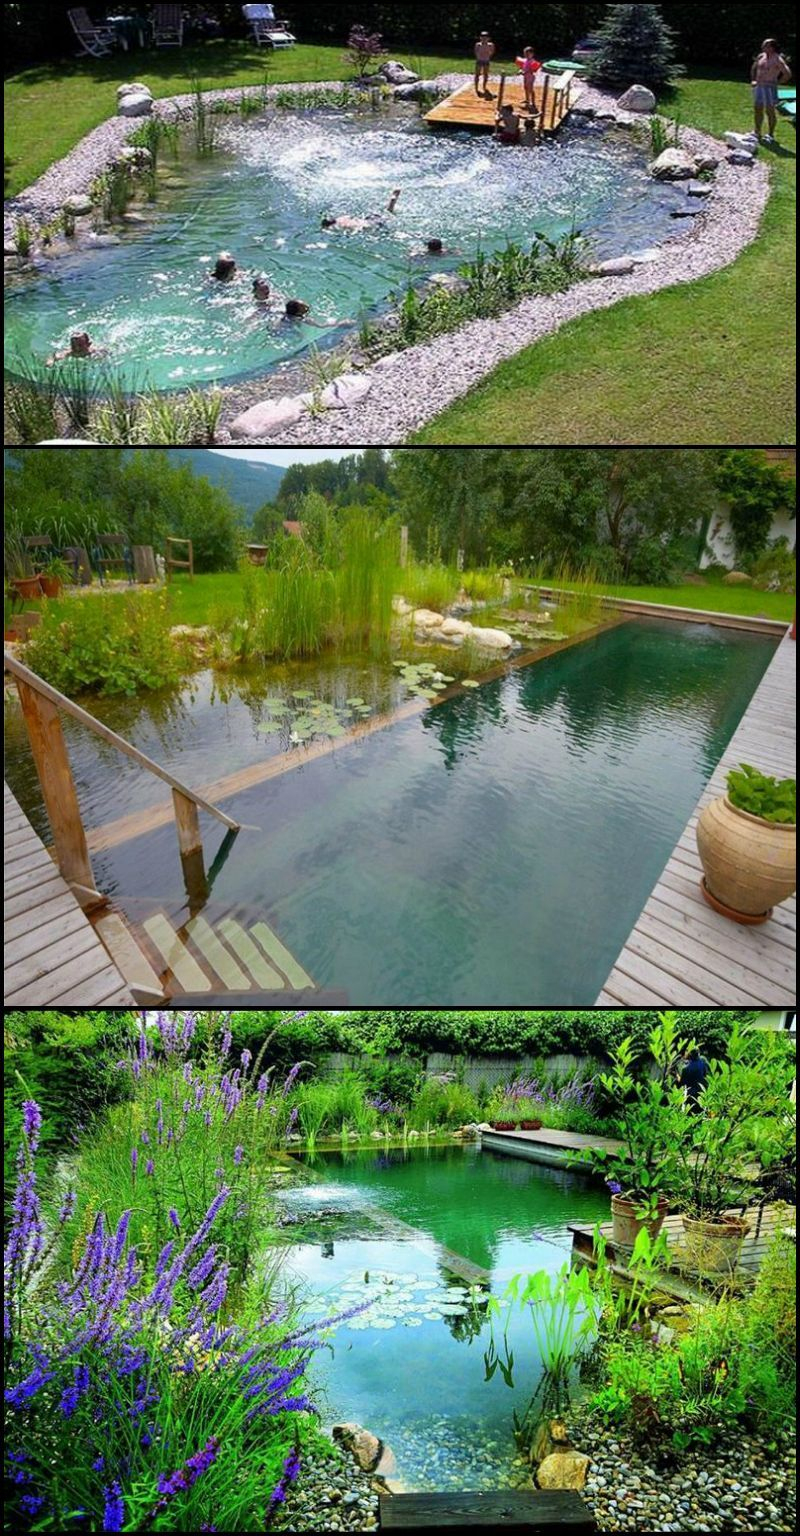 Natural Swimming Ponds, Also Called Natural Pools, Are A ... encequiconcerne Piscine Gonflable Gifi